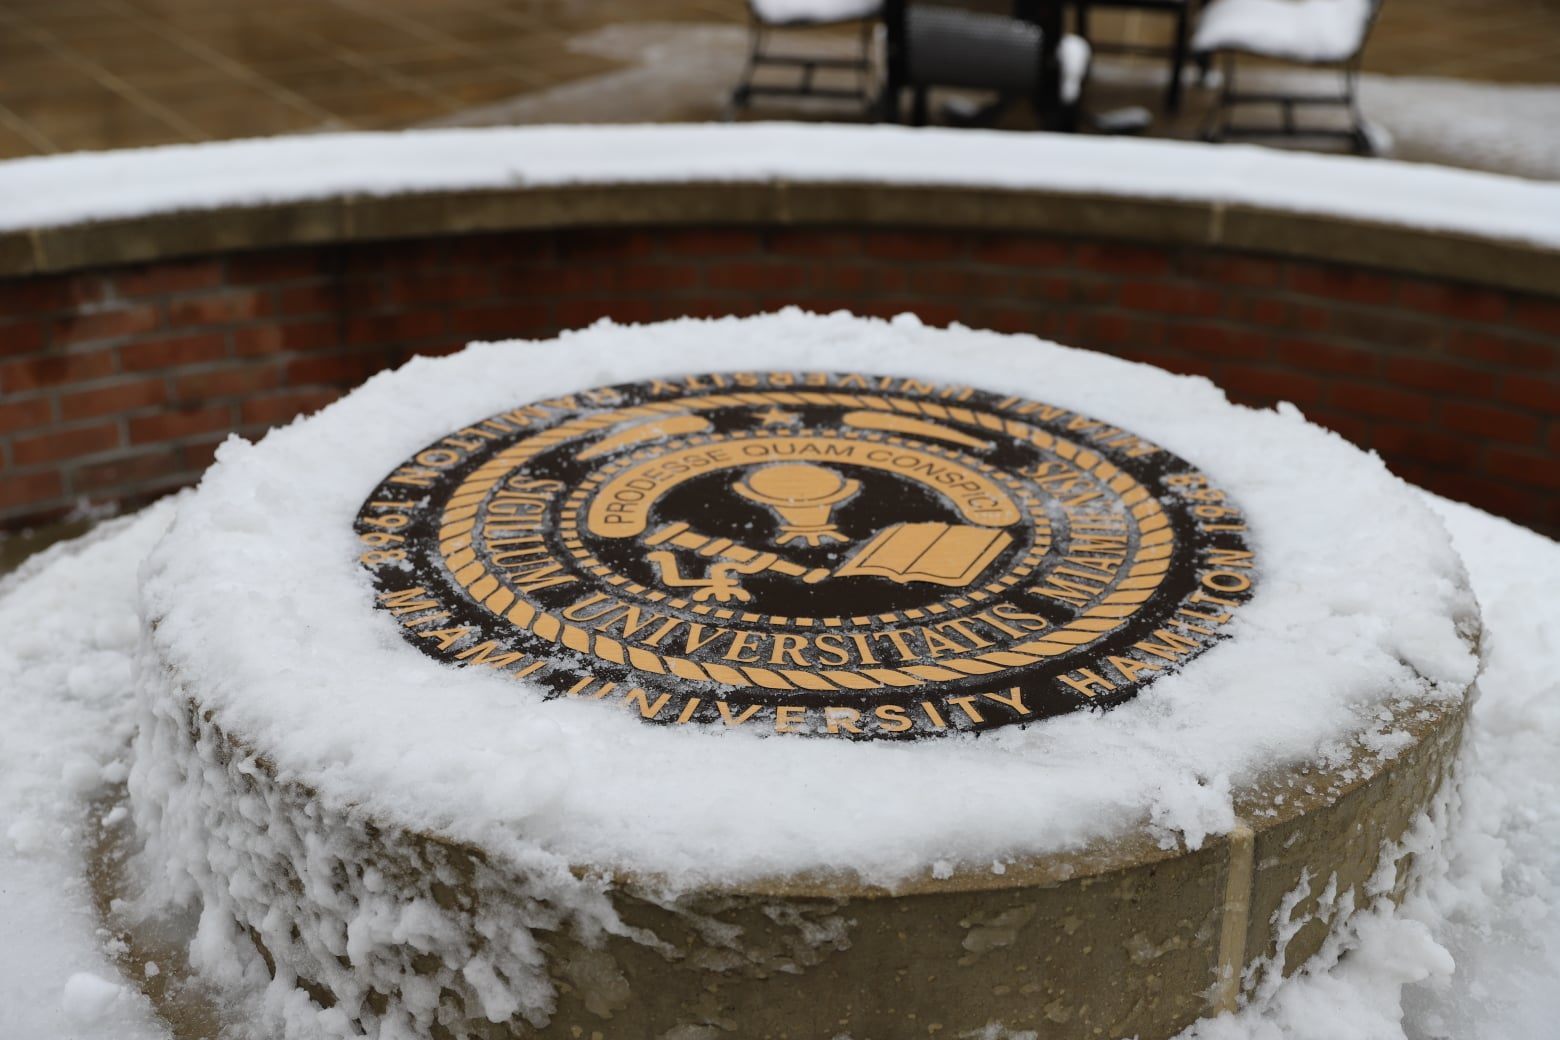 Seal at Miami Regional campus in the snow